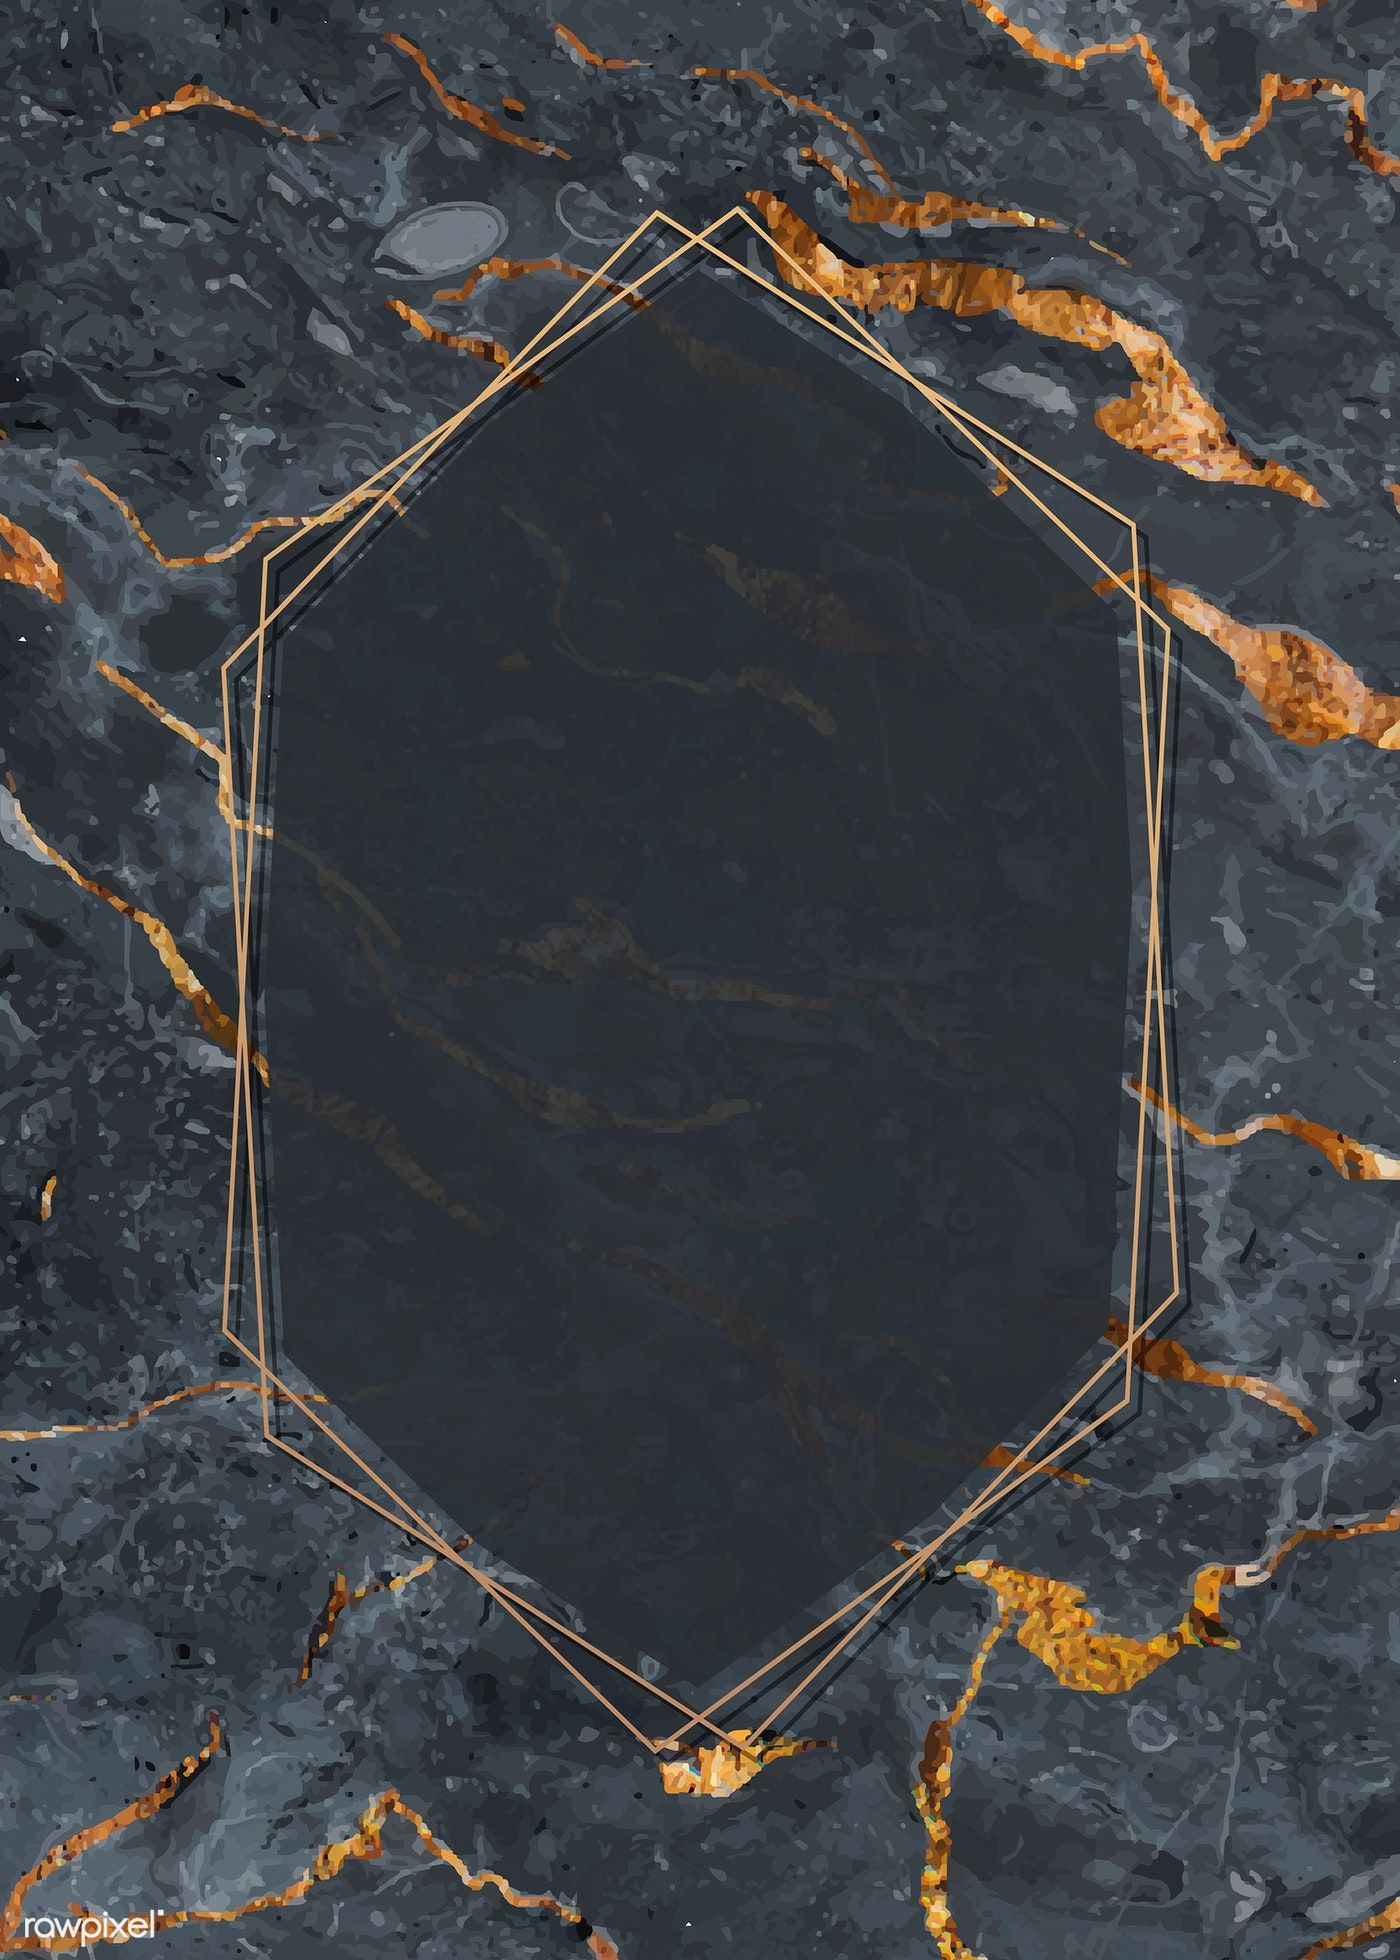 Download premium vector of Giolden hexagon frame on a marble textured